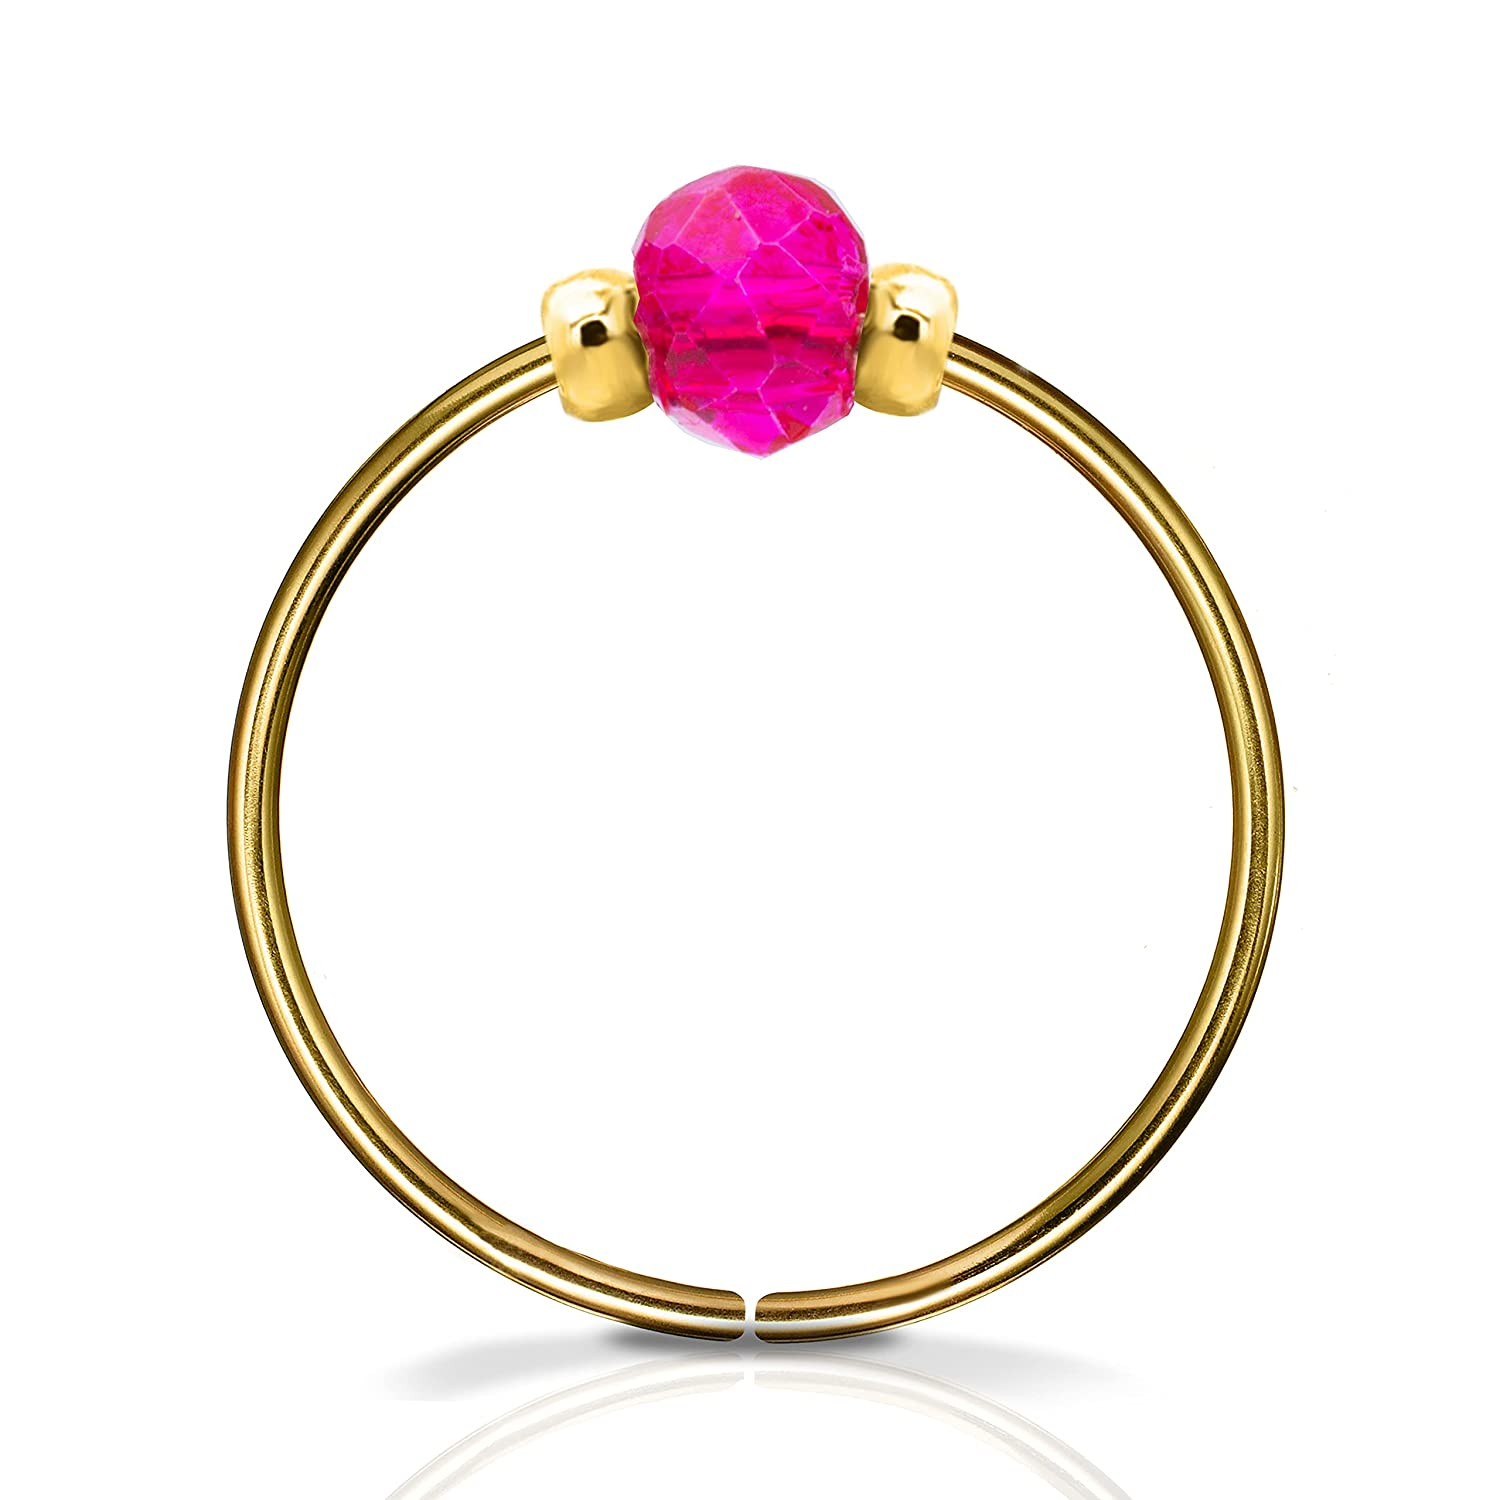 Bombing free shipping Nose Ring - 14K Gold Max 41% OFF Piercings Hypoallergenic Filled Conc